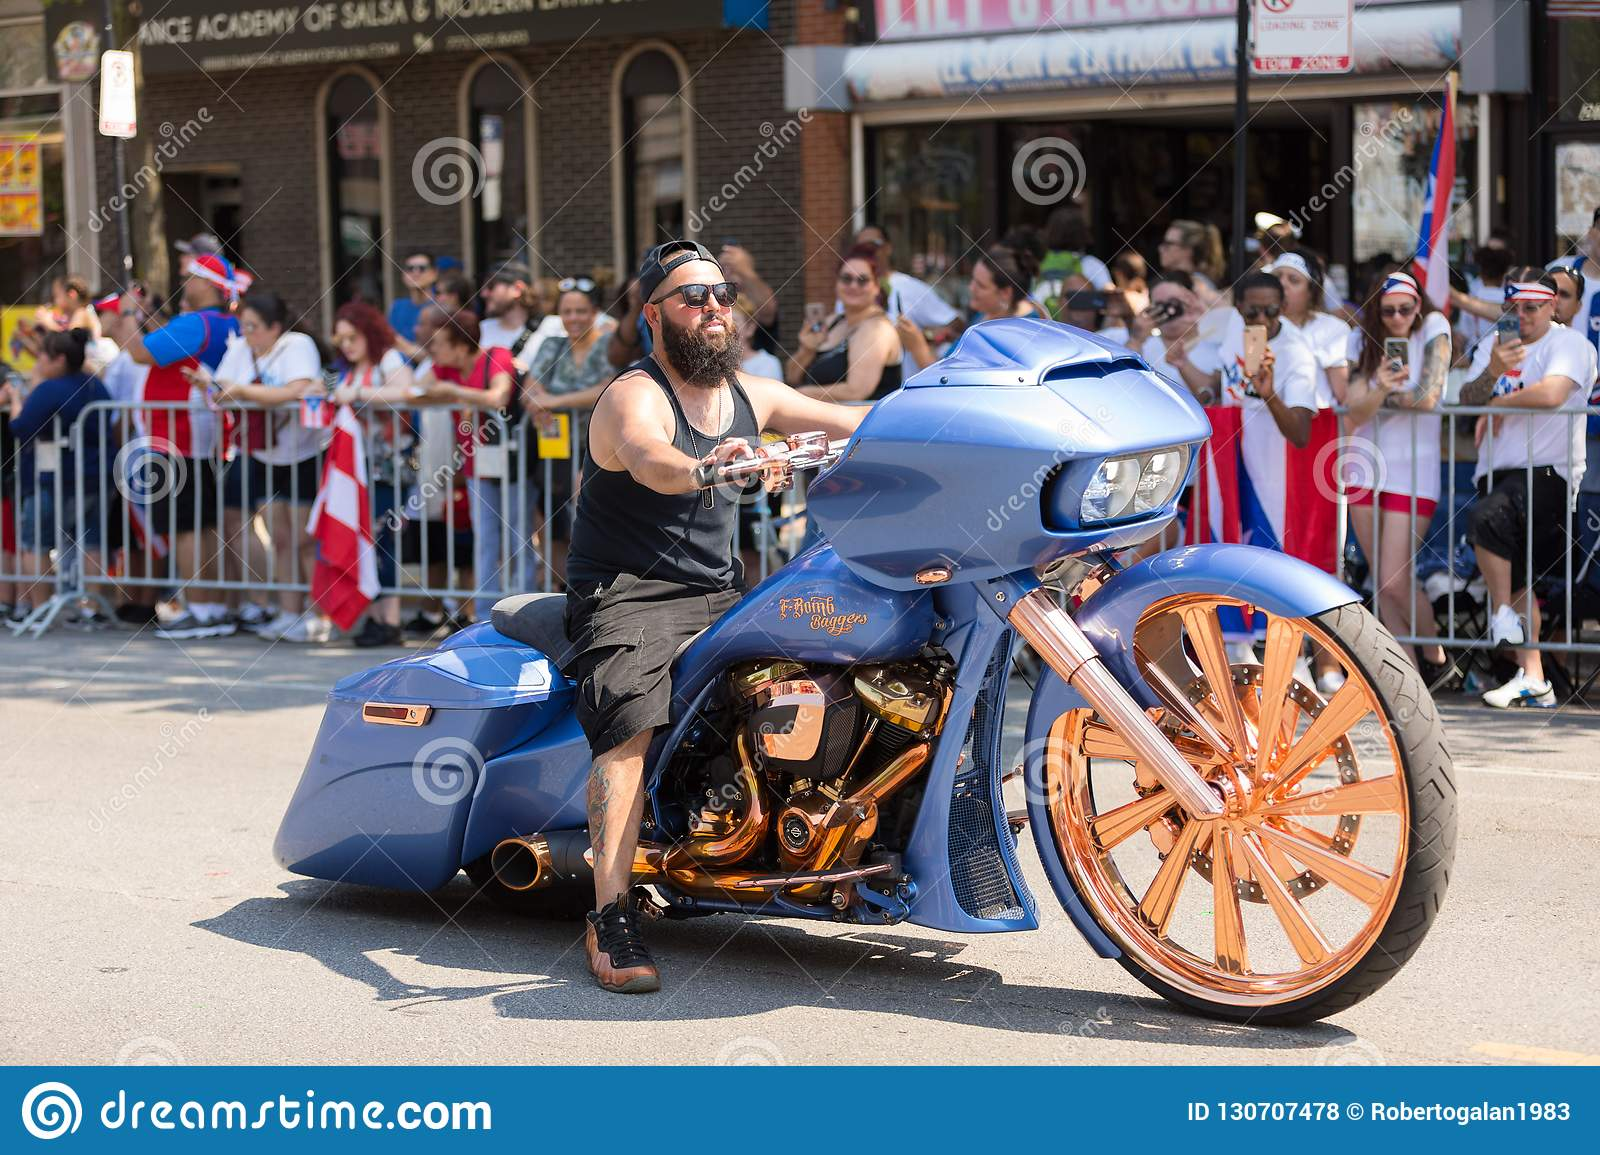 Chicago illinois usa june 16 2018 the puerto rican peoples parade man riding a custom build motorcycle with large wheels and a sticker that says